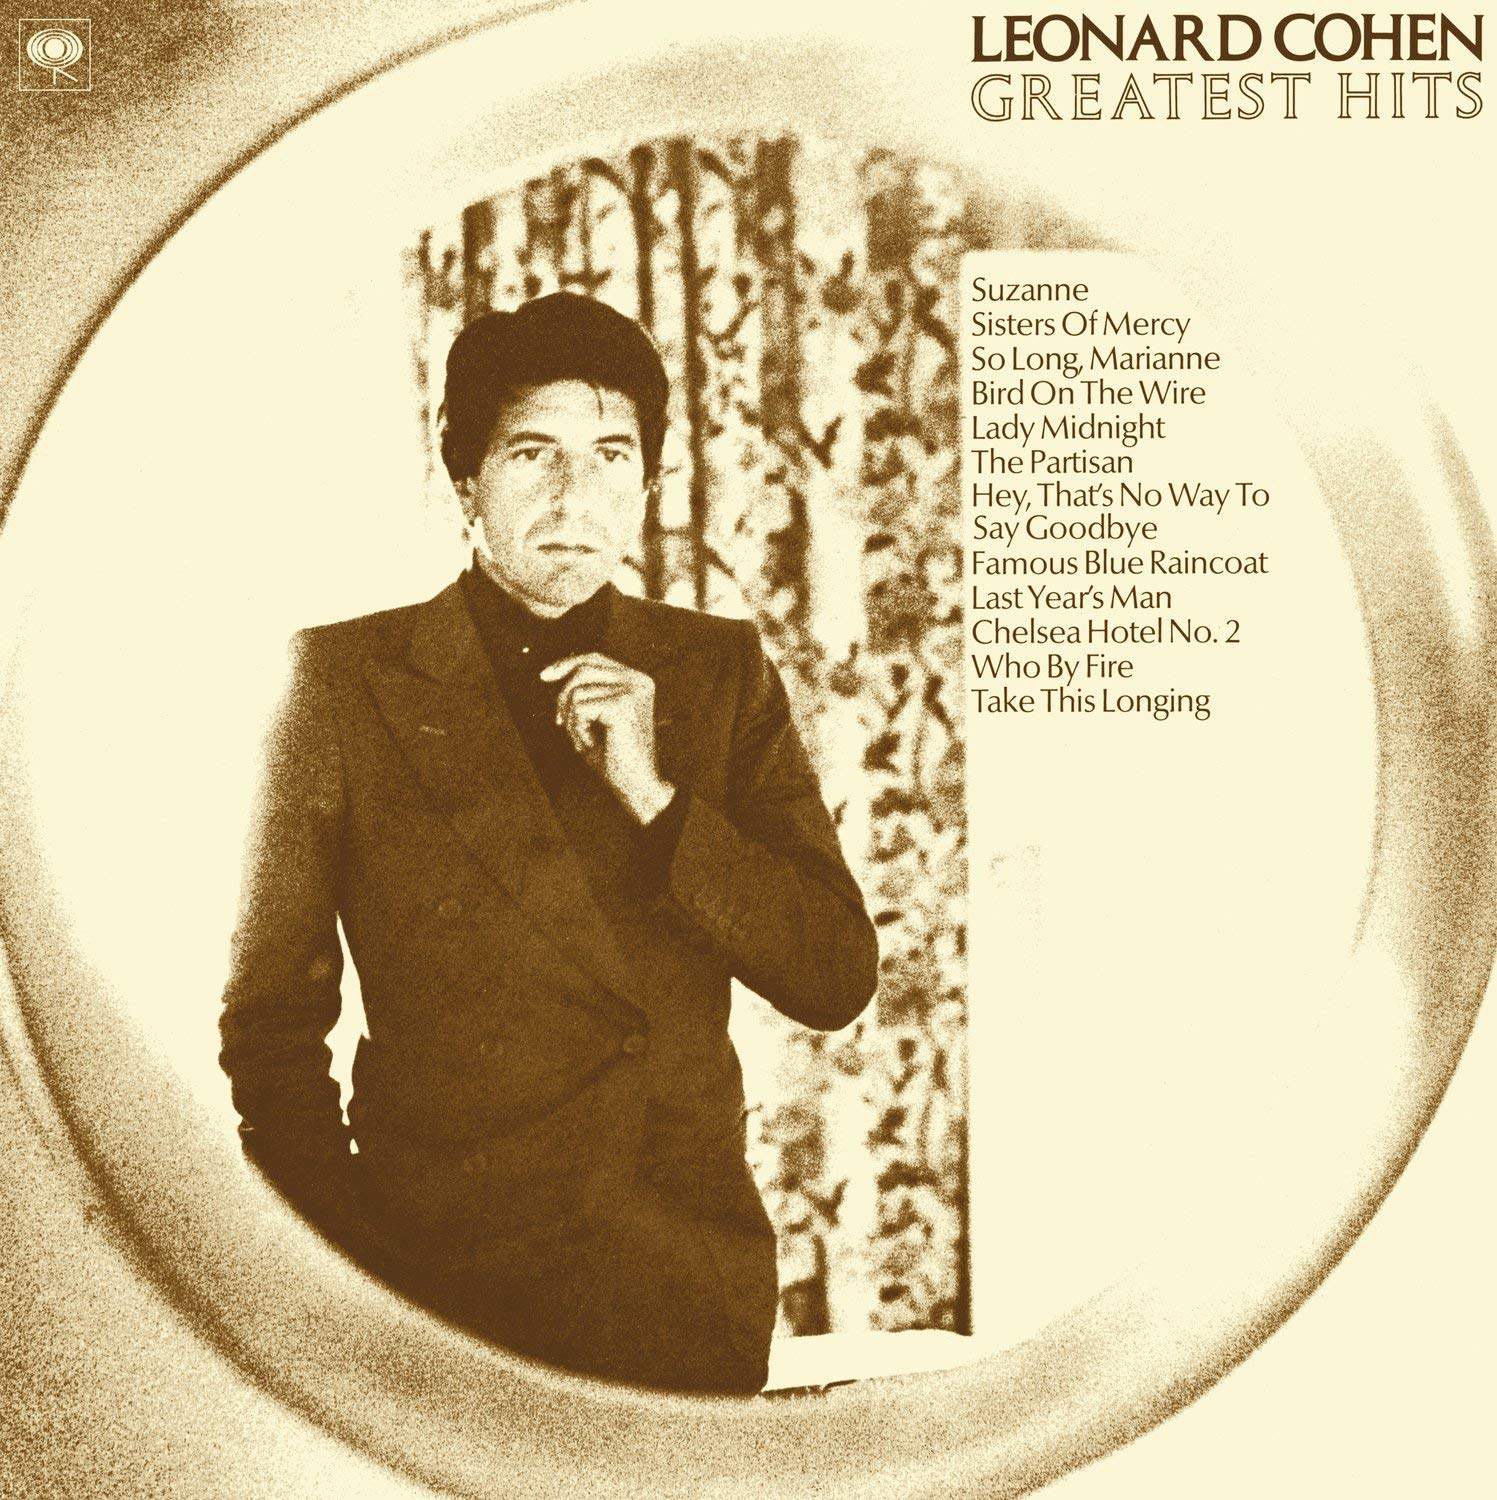 LEONARD COHEN - GREATIST HITS $22 180 gram vinyl @ 1975 Columbia Records